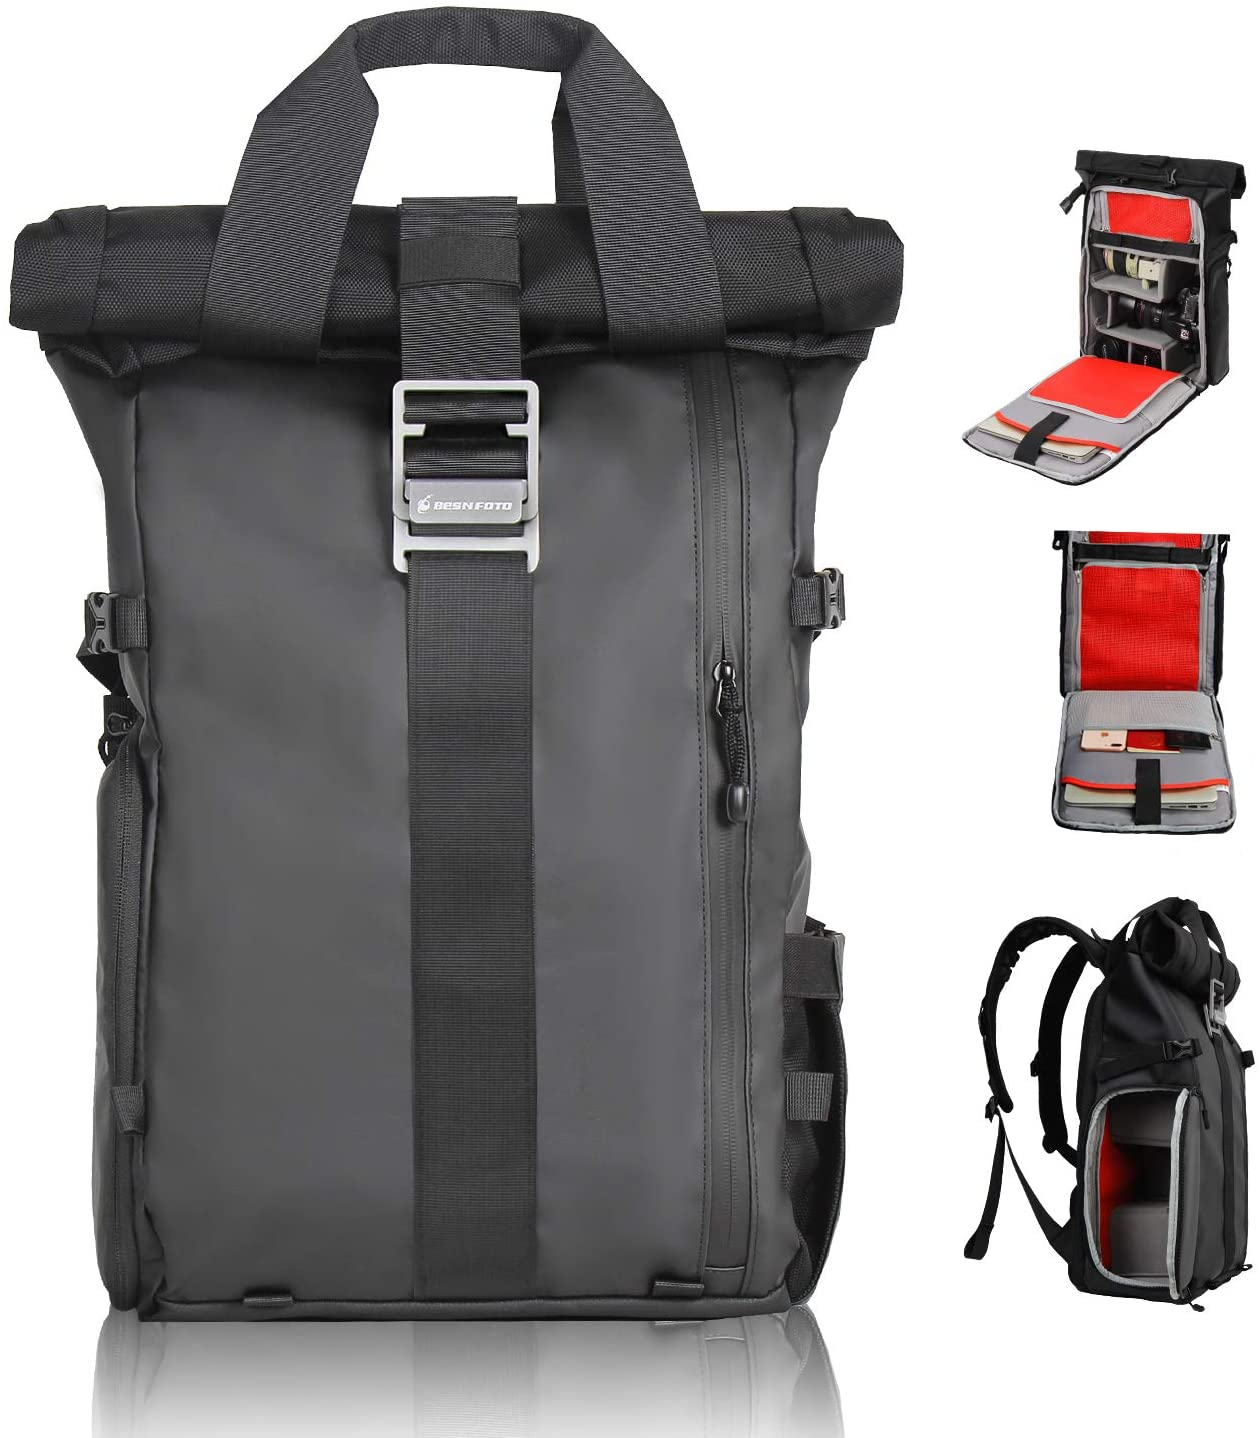 Besnfoto DSLR Camera Backpack Rolltop Laptop Compartment Quick Side Access Waterproof Camera Bag Professional for Hiking Traveling Women and Men Large